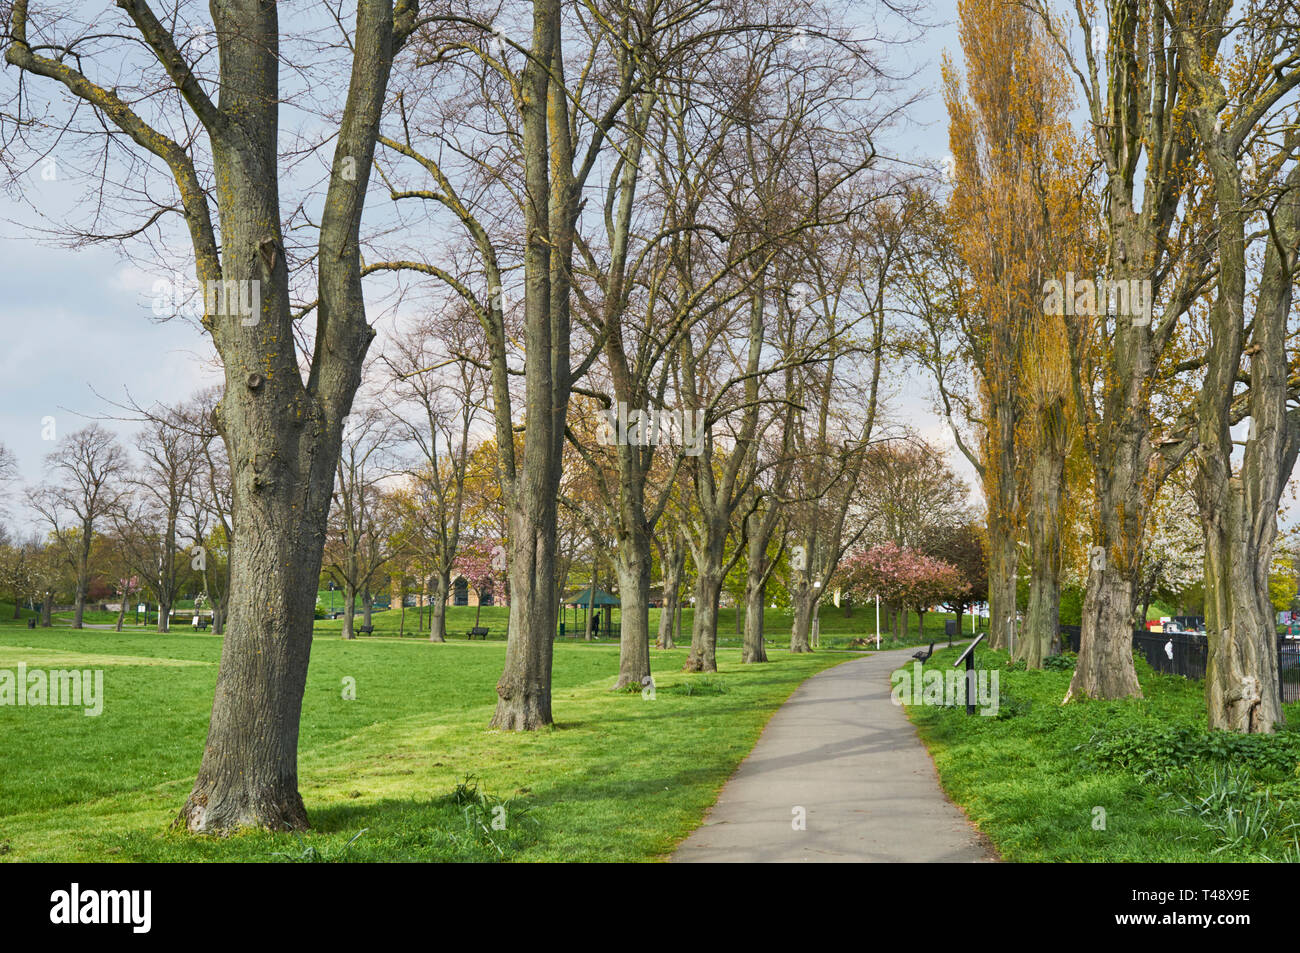 Tree-lined path in Markfield Park in springtime, South Tottenham, London UK - Stock Image